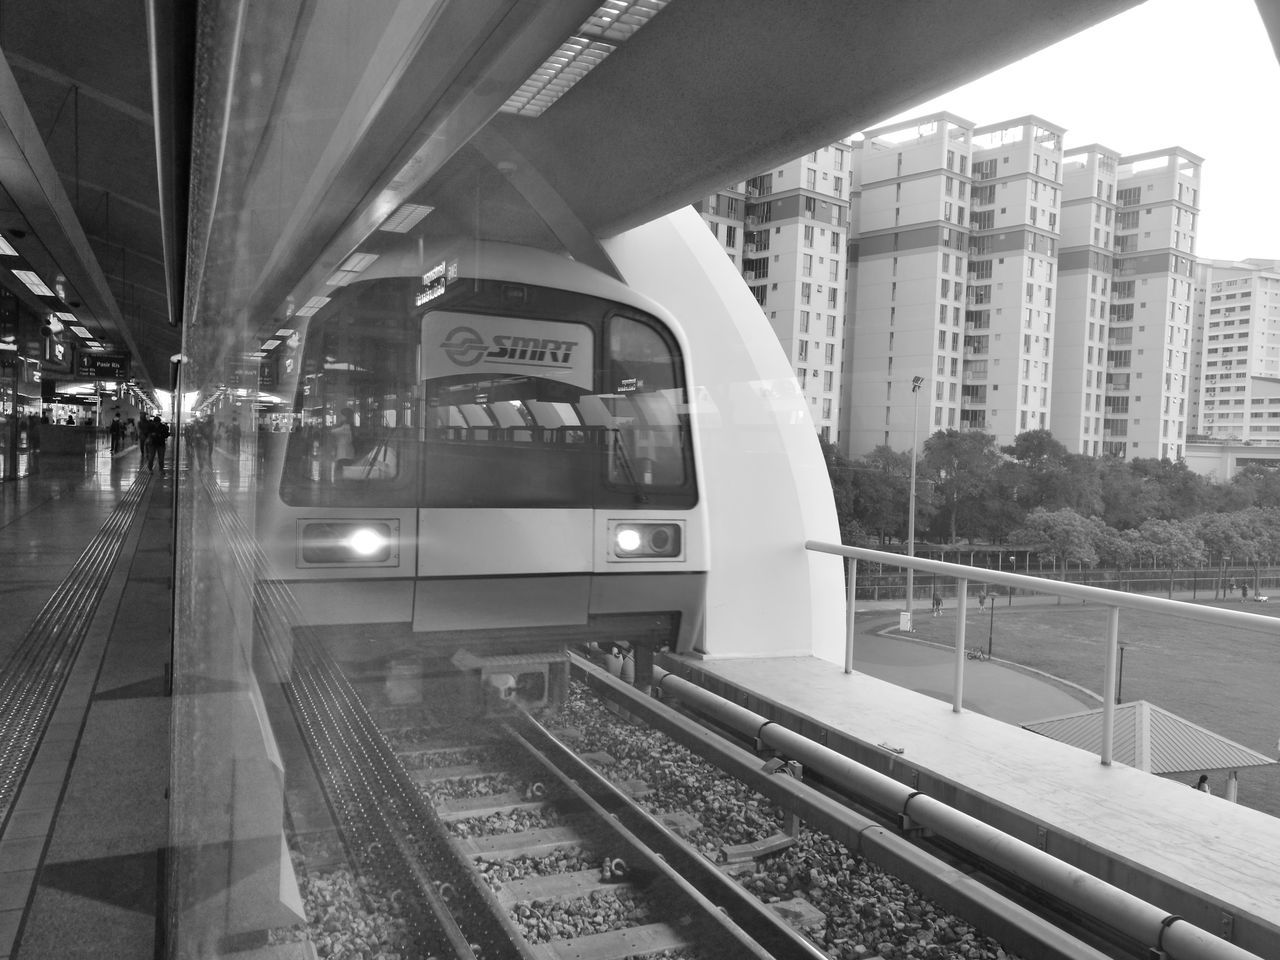 Architectural Column Architecture Built Structure City City Life Day Empty Modern My Commute My Commute-2016 EyeEm Photography Awards No People Public Transportation Railroad Station Railroad Track Subway Station The Way Forward Train System Transportation Building - Type Of Building Travel Destinations